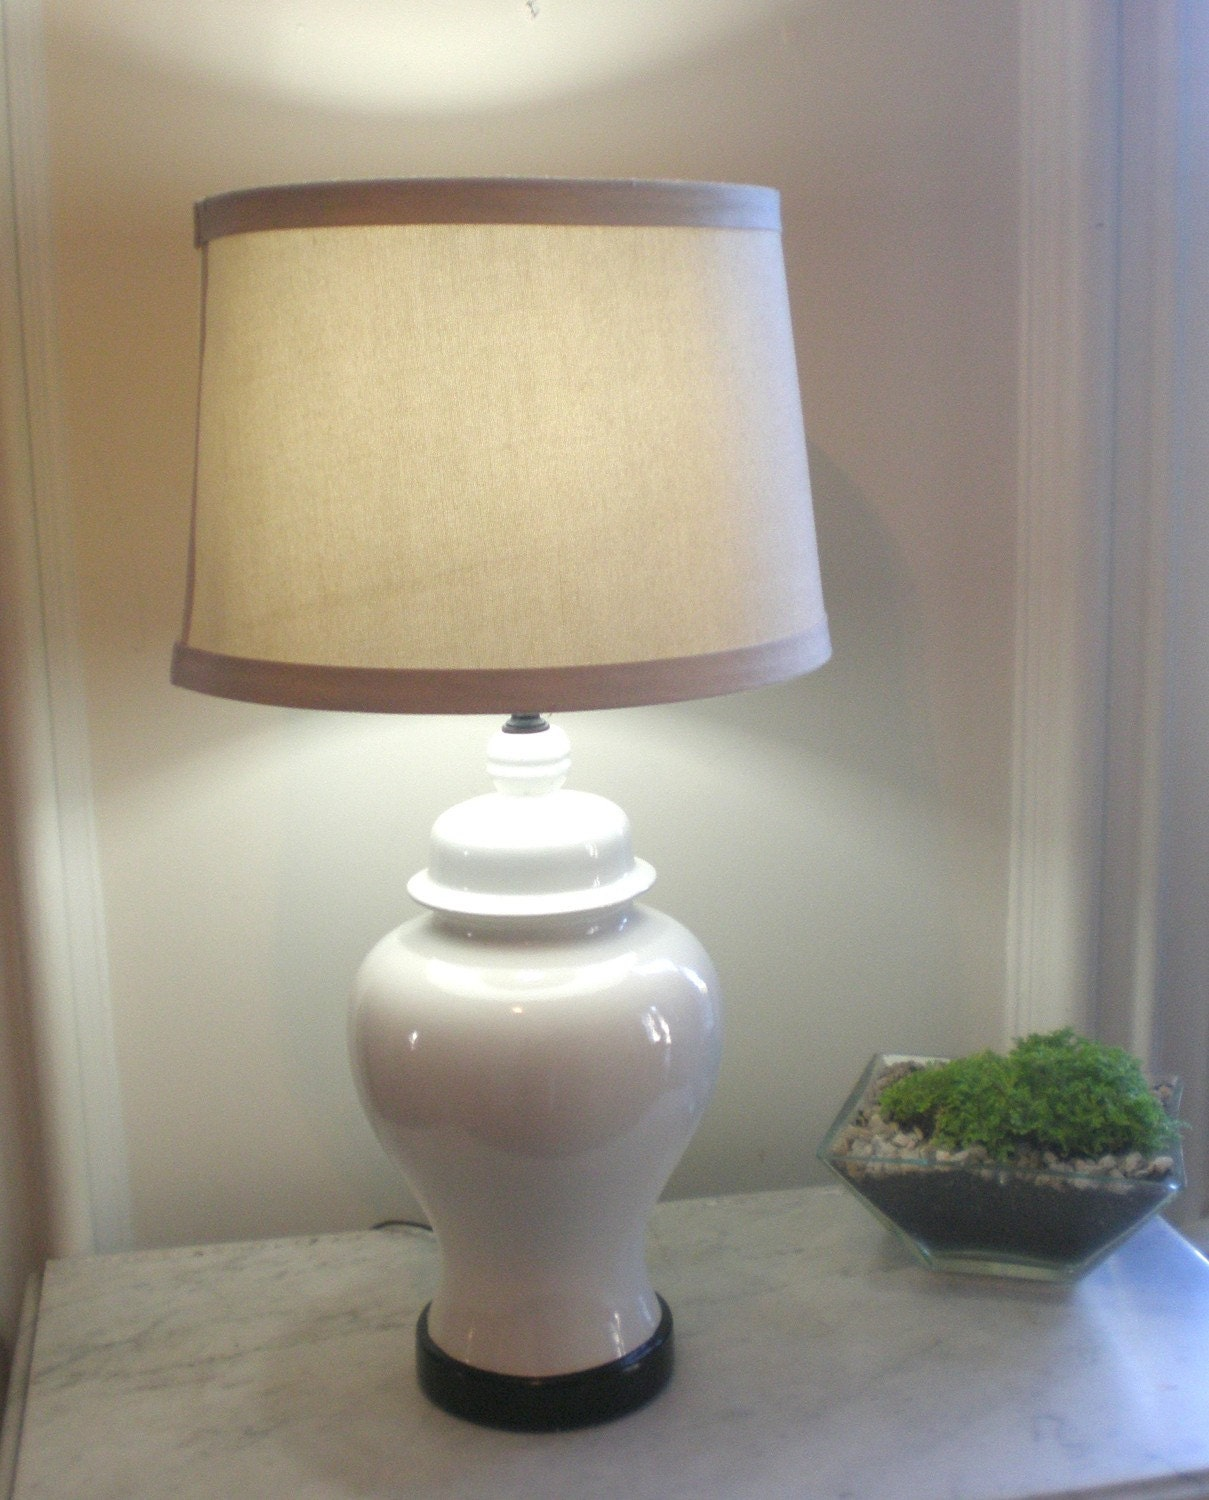 Sale Vintage White Ceramic Ginger Jar Lamp Hollywood Regency